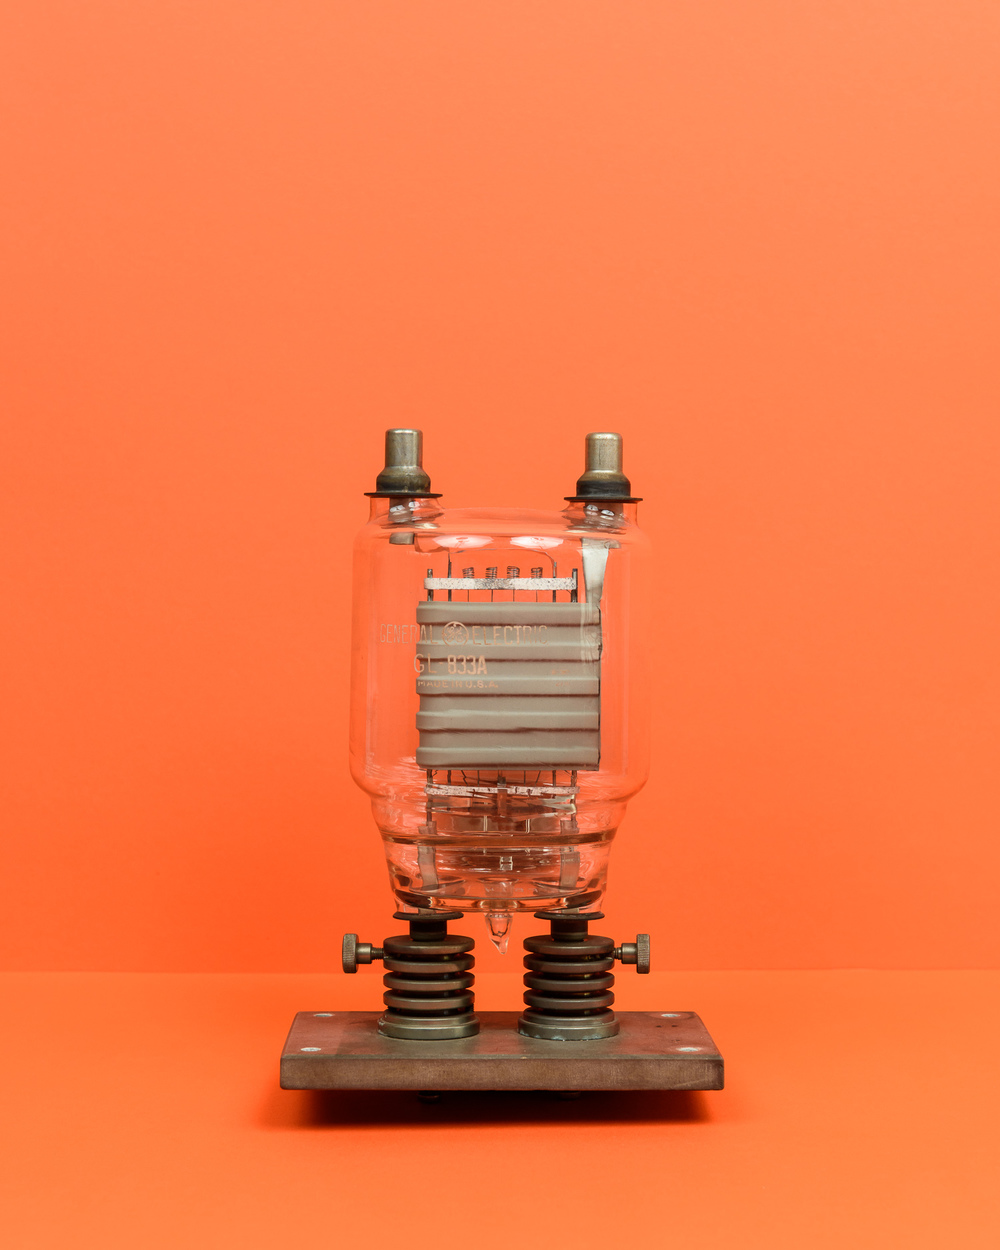 Vacuum tube: General Electric GL-833A, Triode